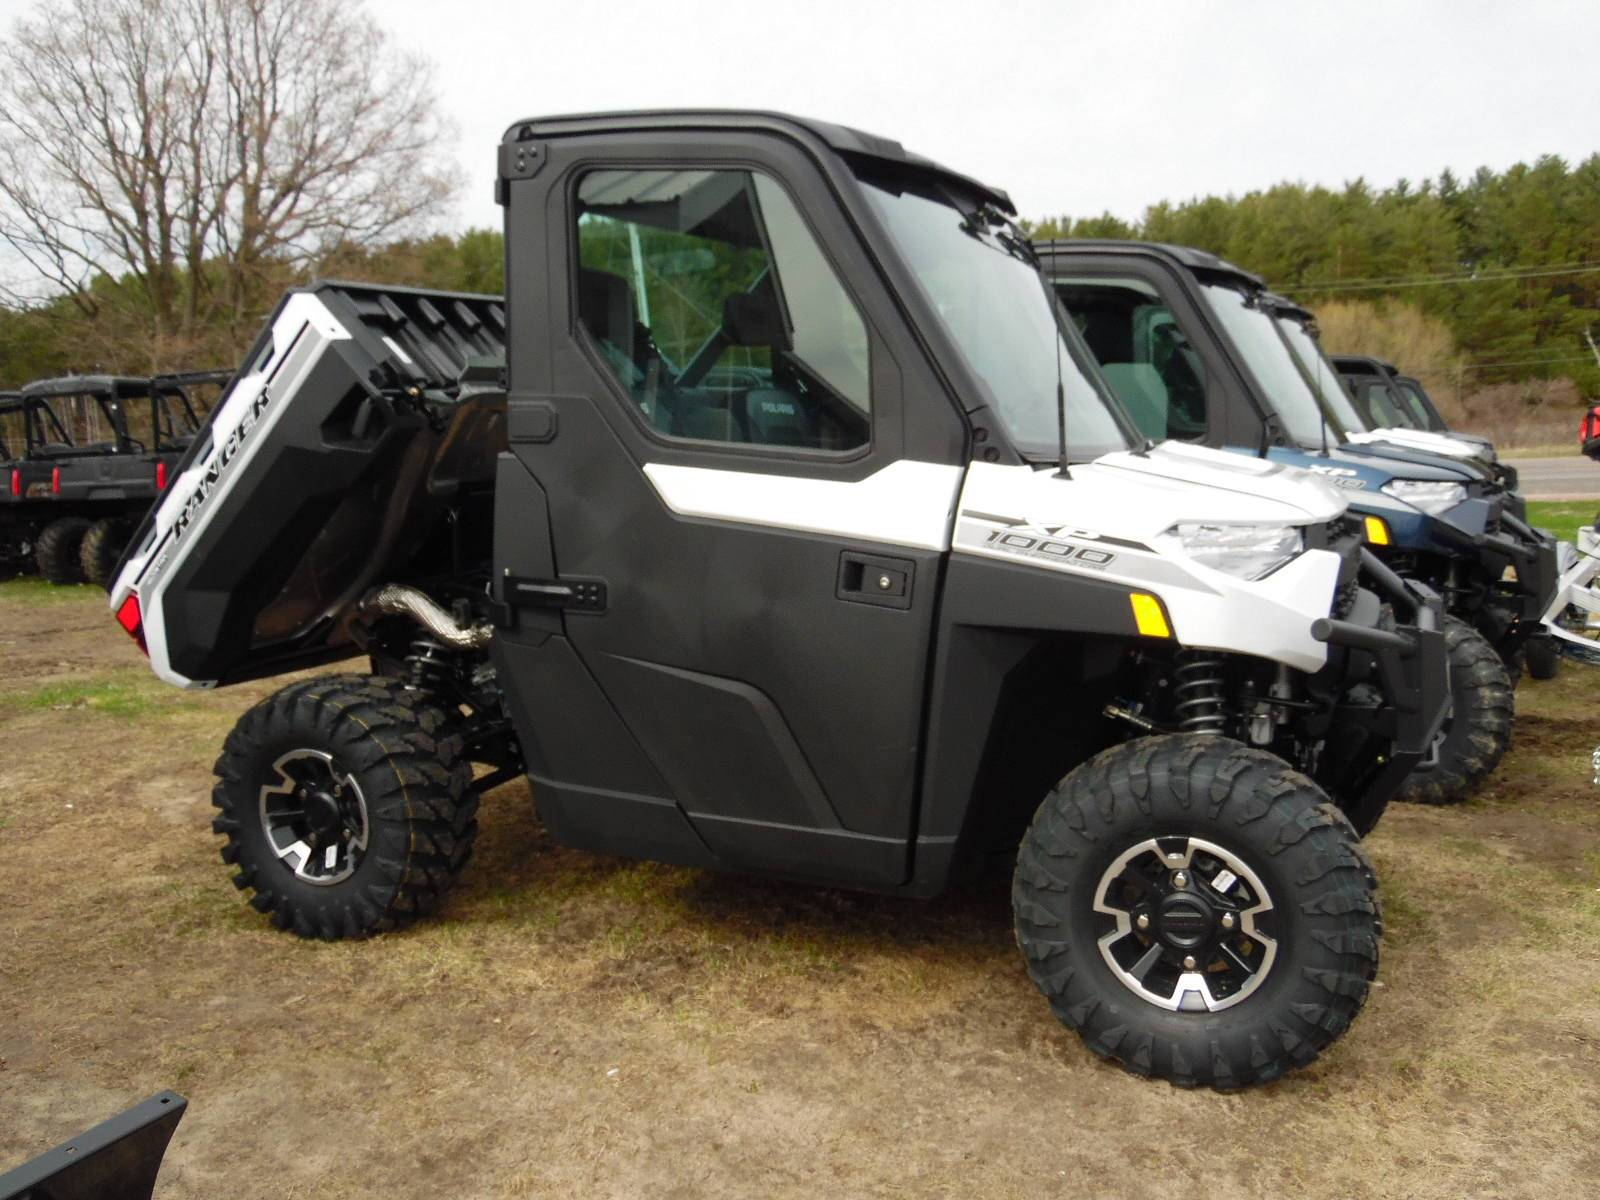 2019 Polaris Ranger 1000 North Star, RC in Malone, New York